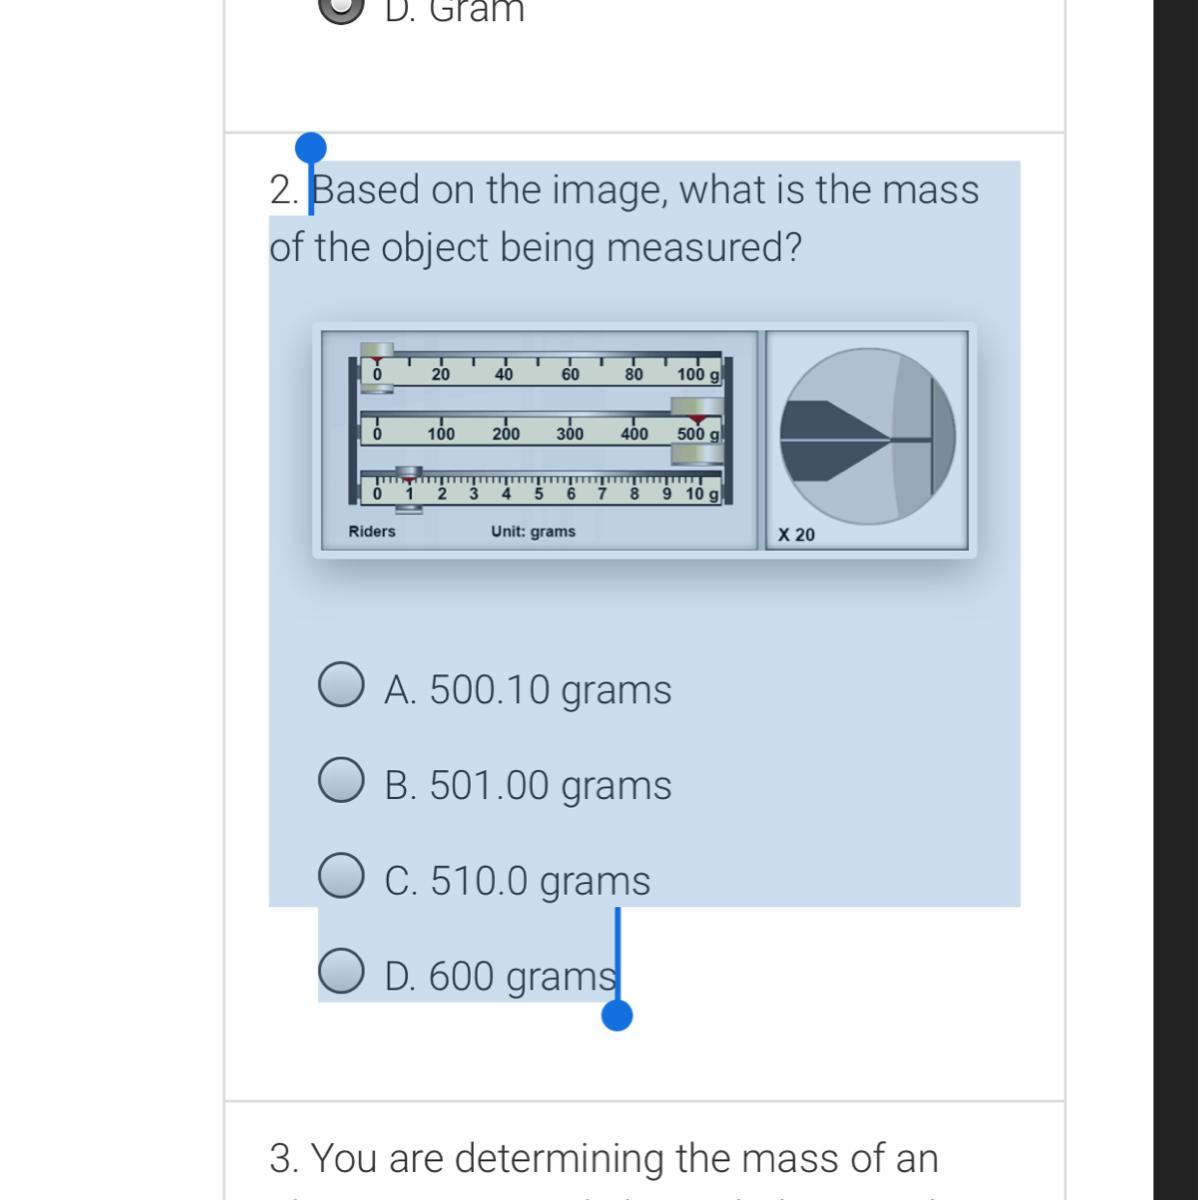 Based On The Image What Is The Mass Of The Object Being